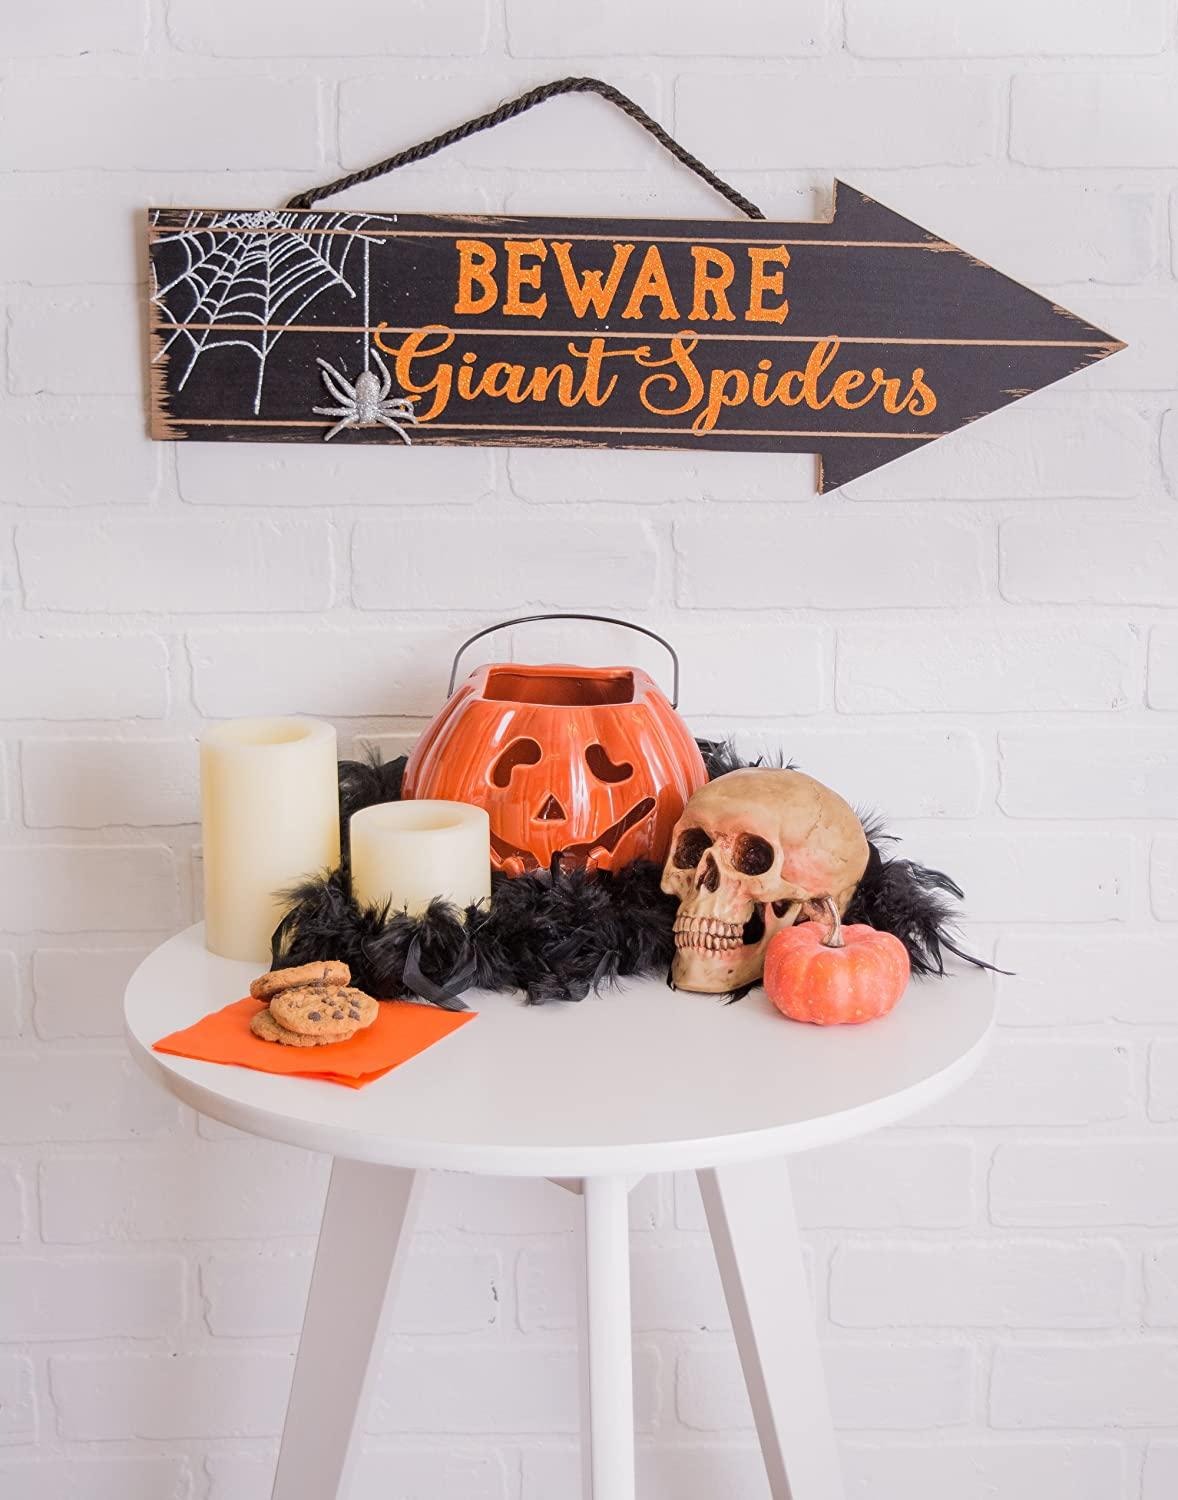 DII Indoor and Outdoor Foam Halloween Hanging Door Decorations and Wall Signs School Spiders Party Decorations For Home Office Set of 2